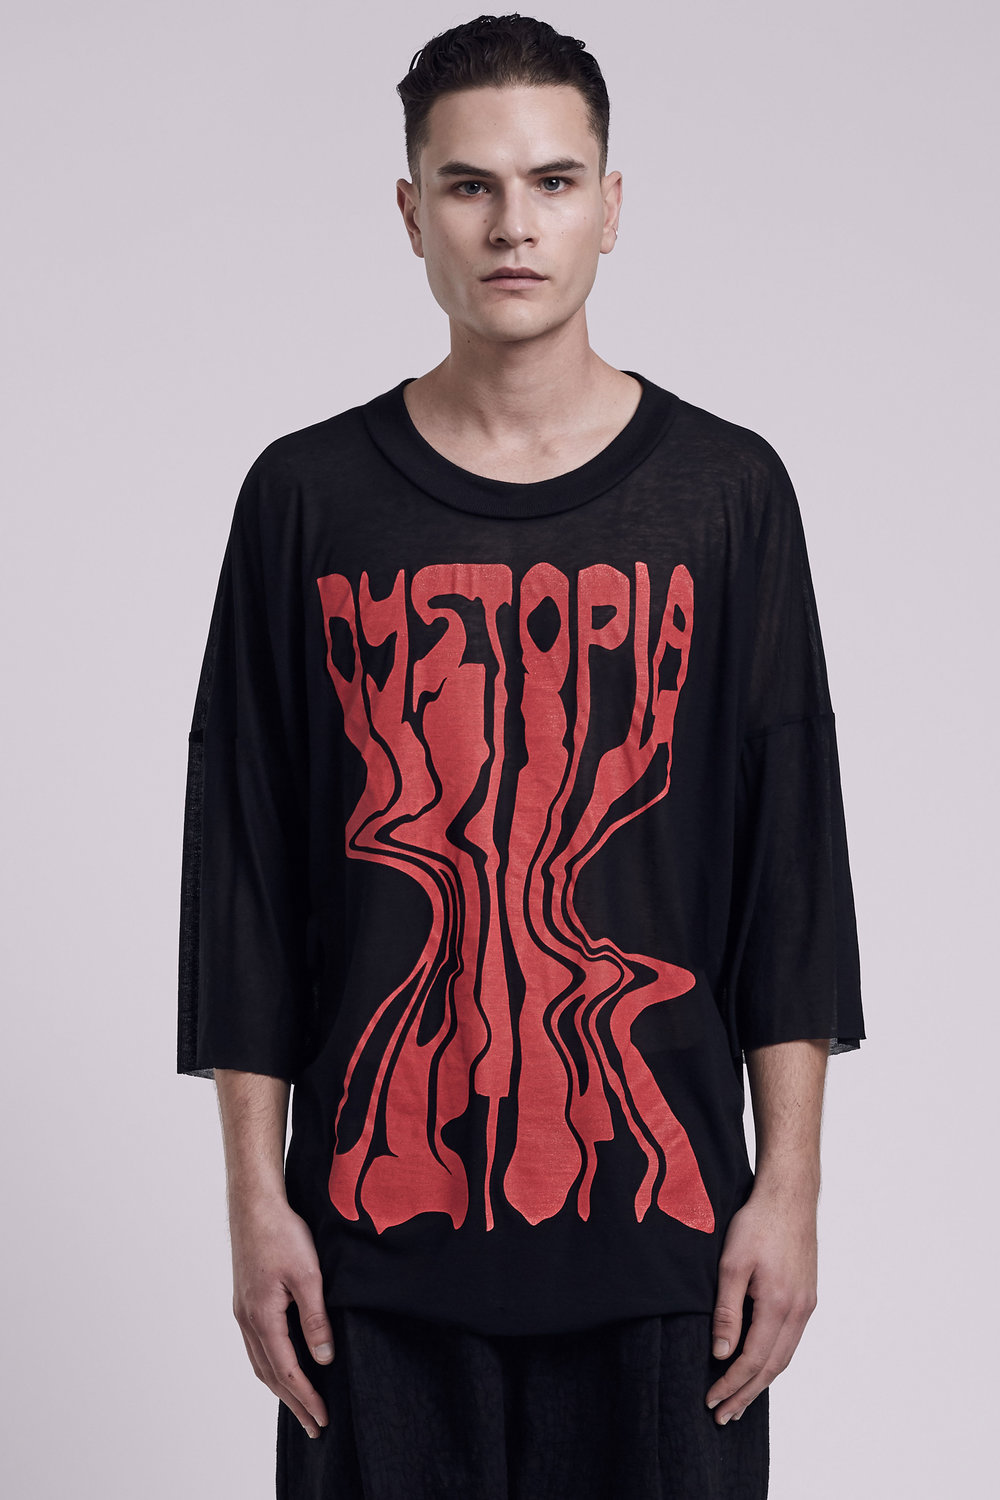 Jason Lingard's Dystopia collection. Image supplied.